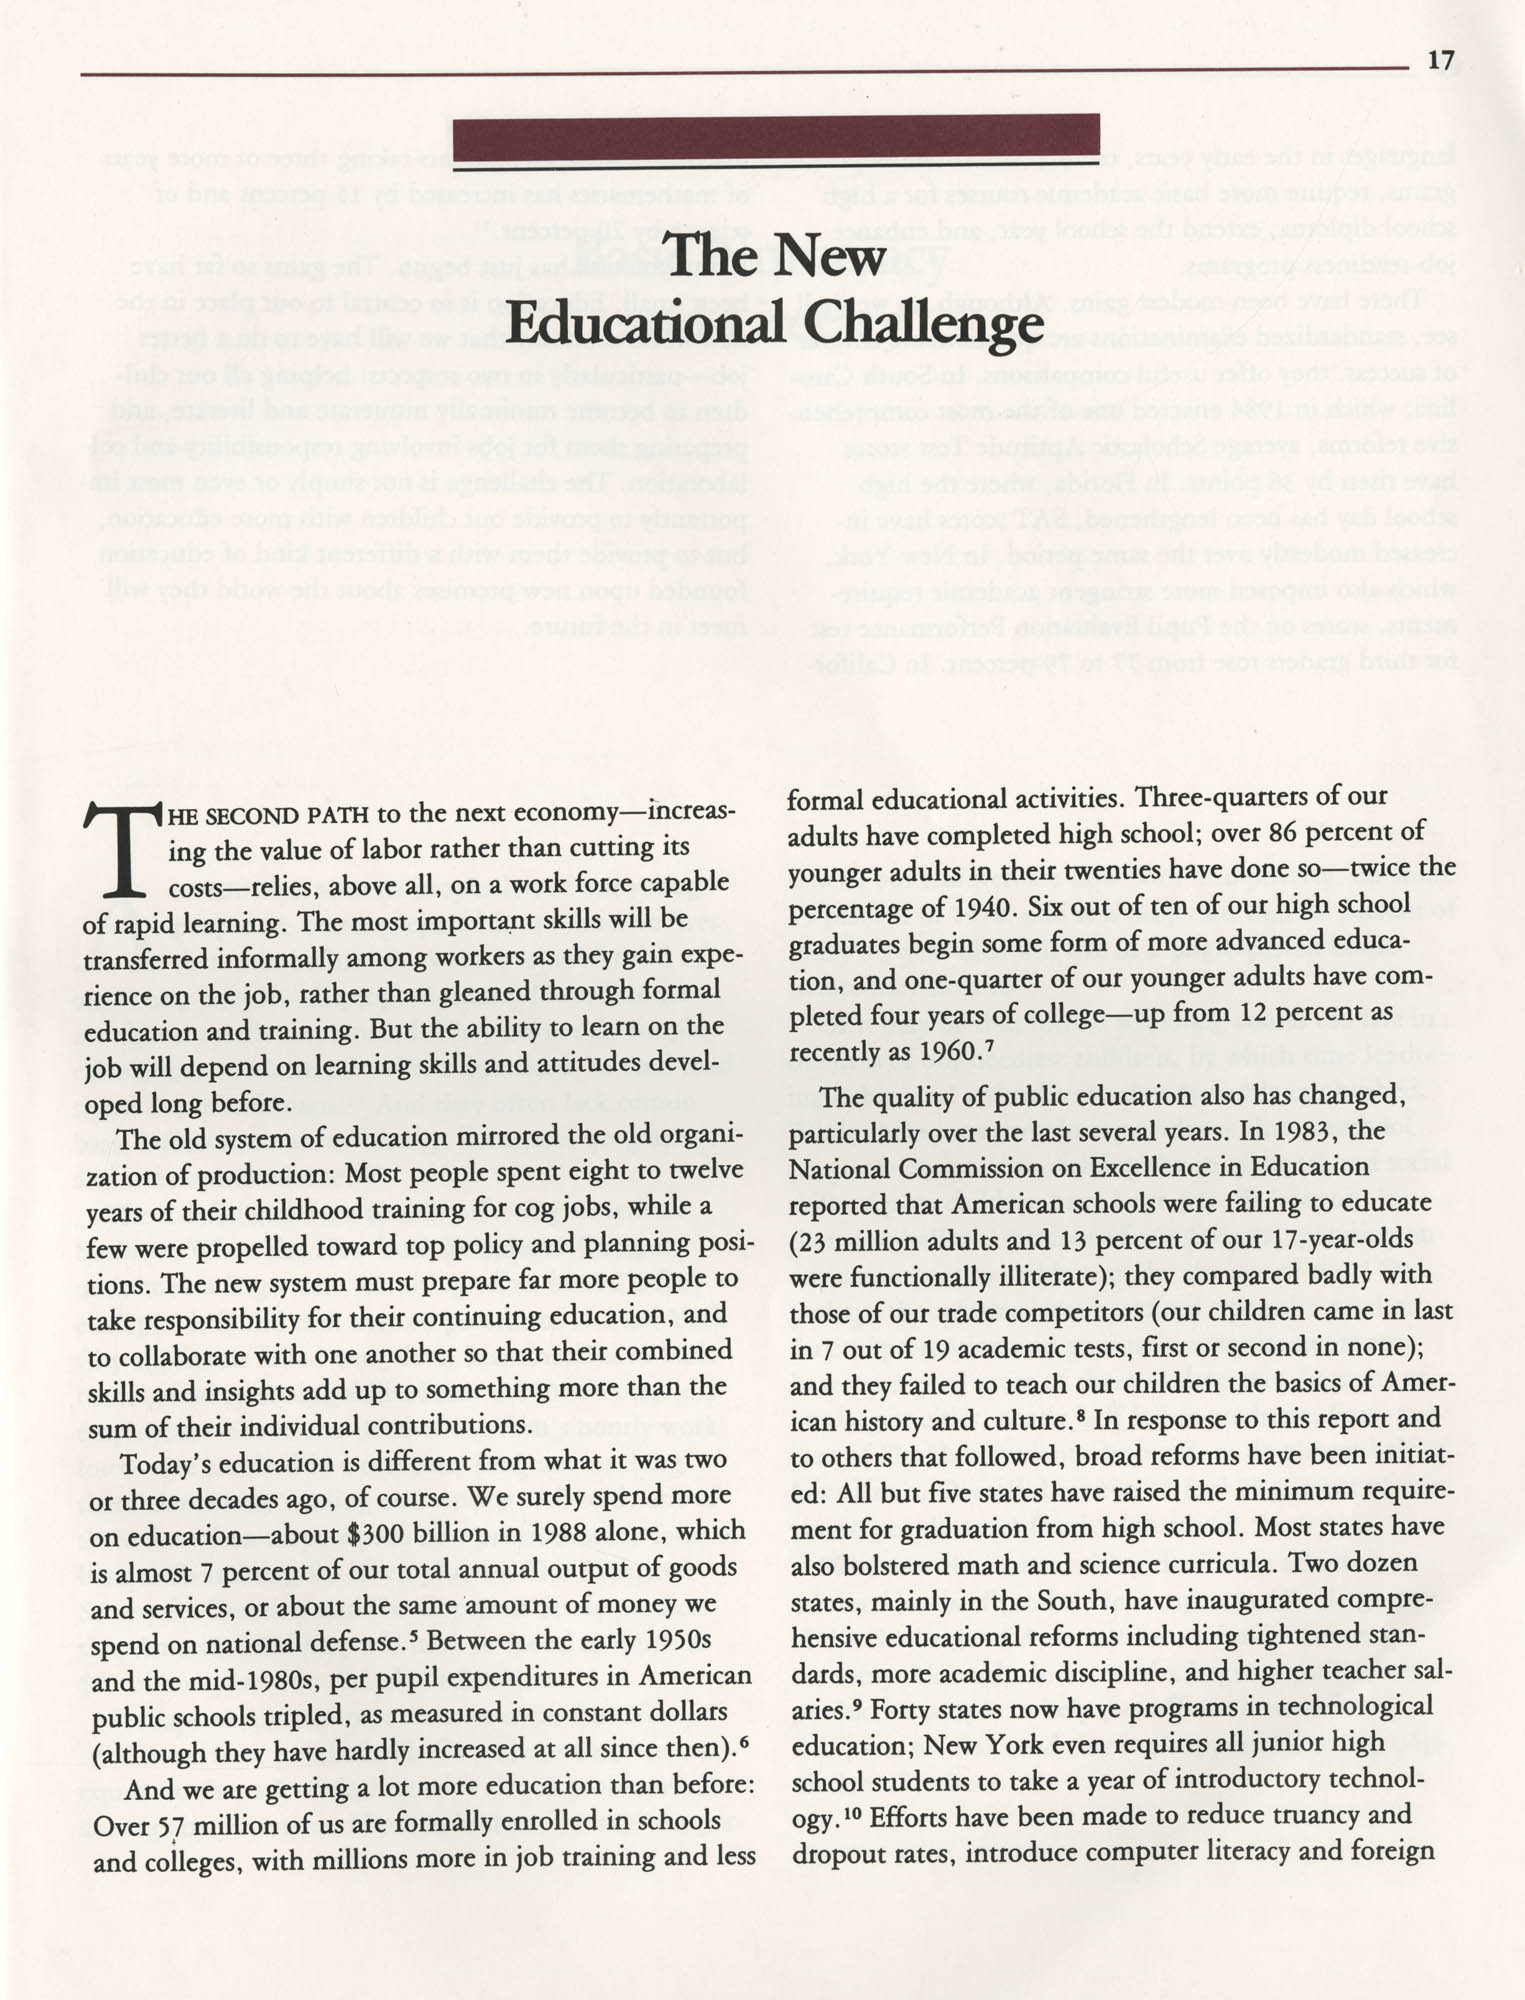 Education and the Next Economy, Page 17